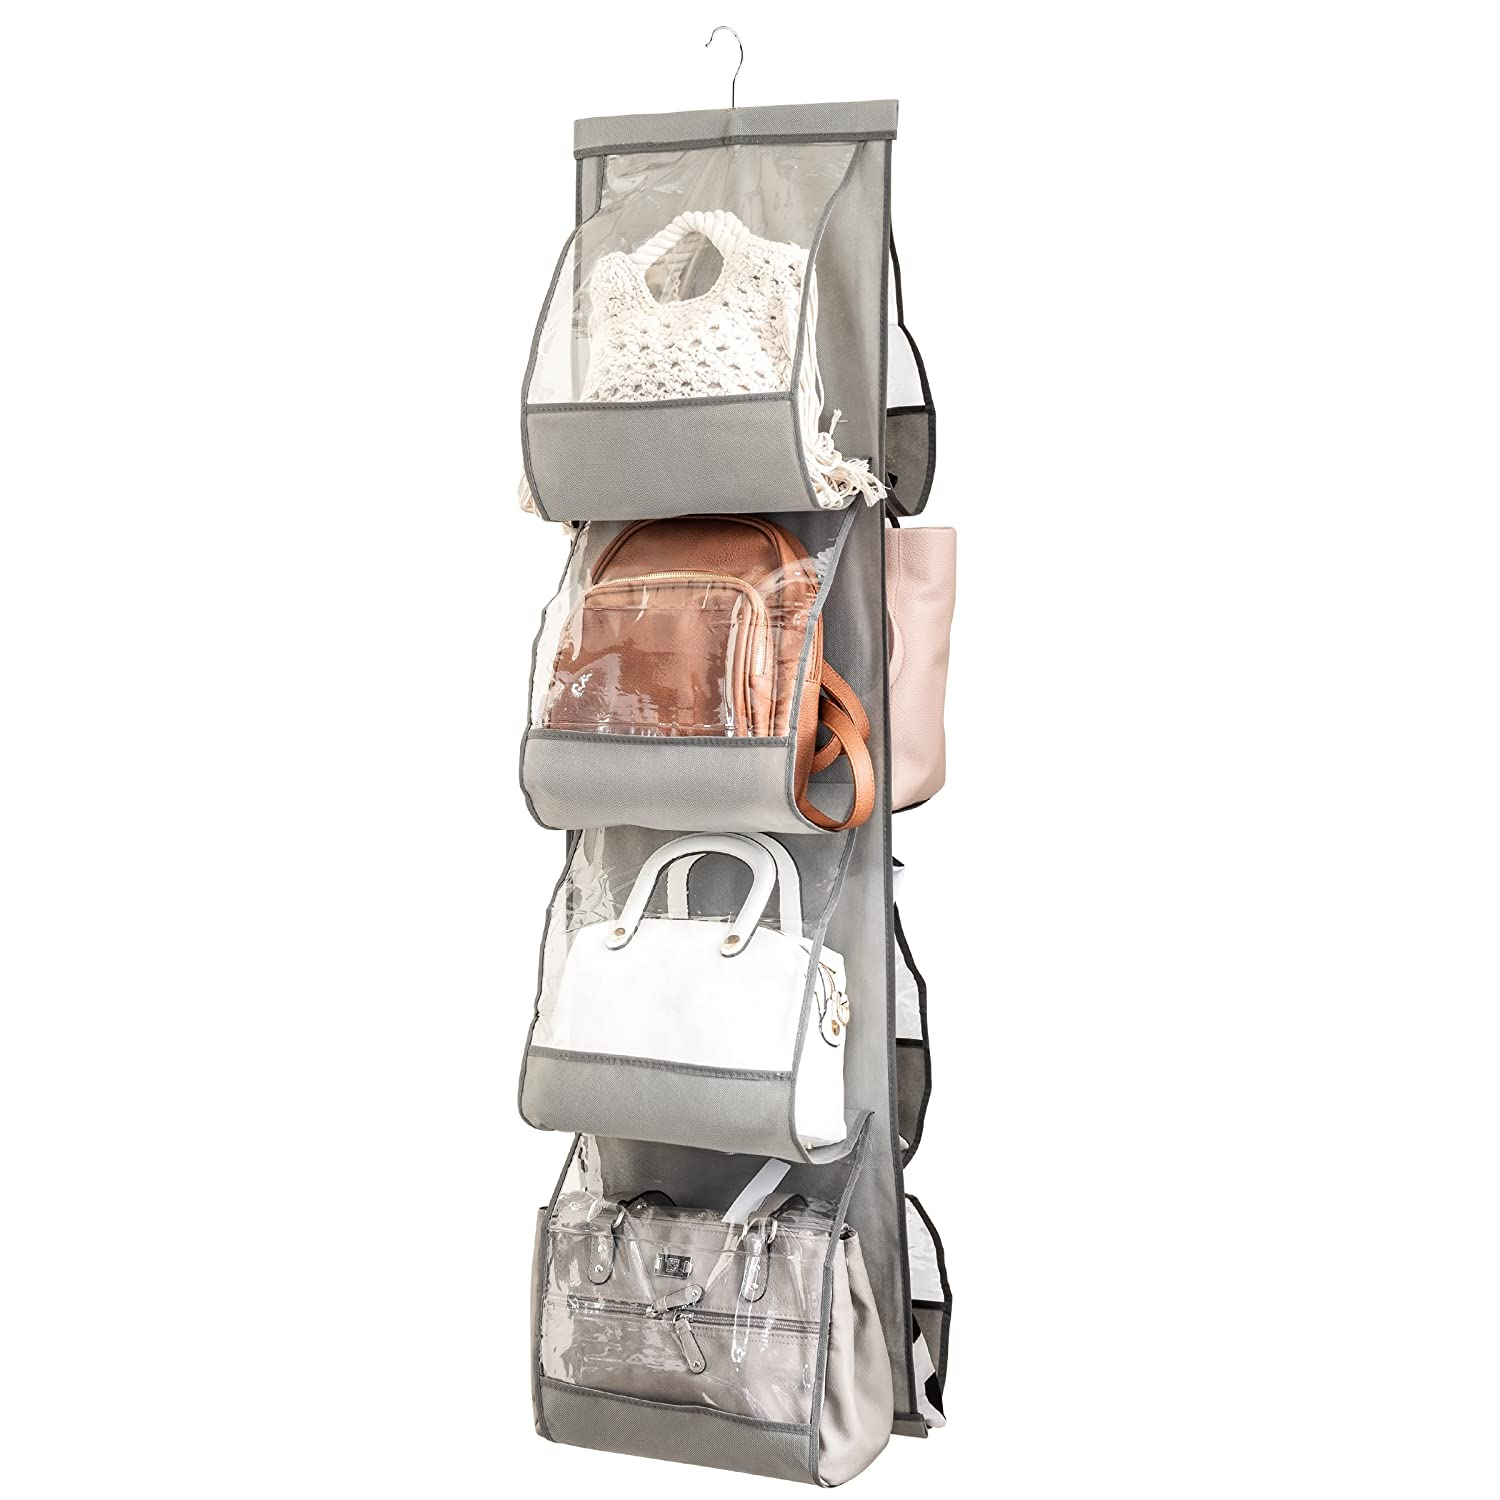 ZOBER Hanging Purse Organizer, Breathable Nonwoven Handbag Organizer, 8 Easy Access Clear Vinyl Pockets, White, 48 L x 12 W FBA_ZO-NW304